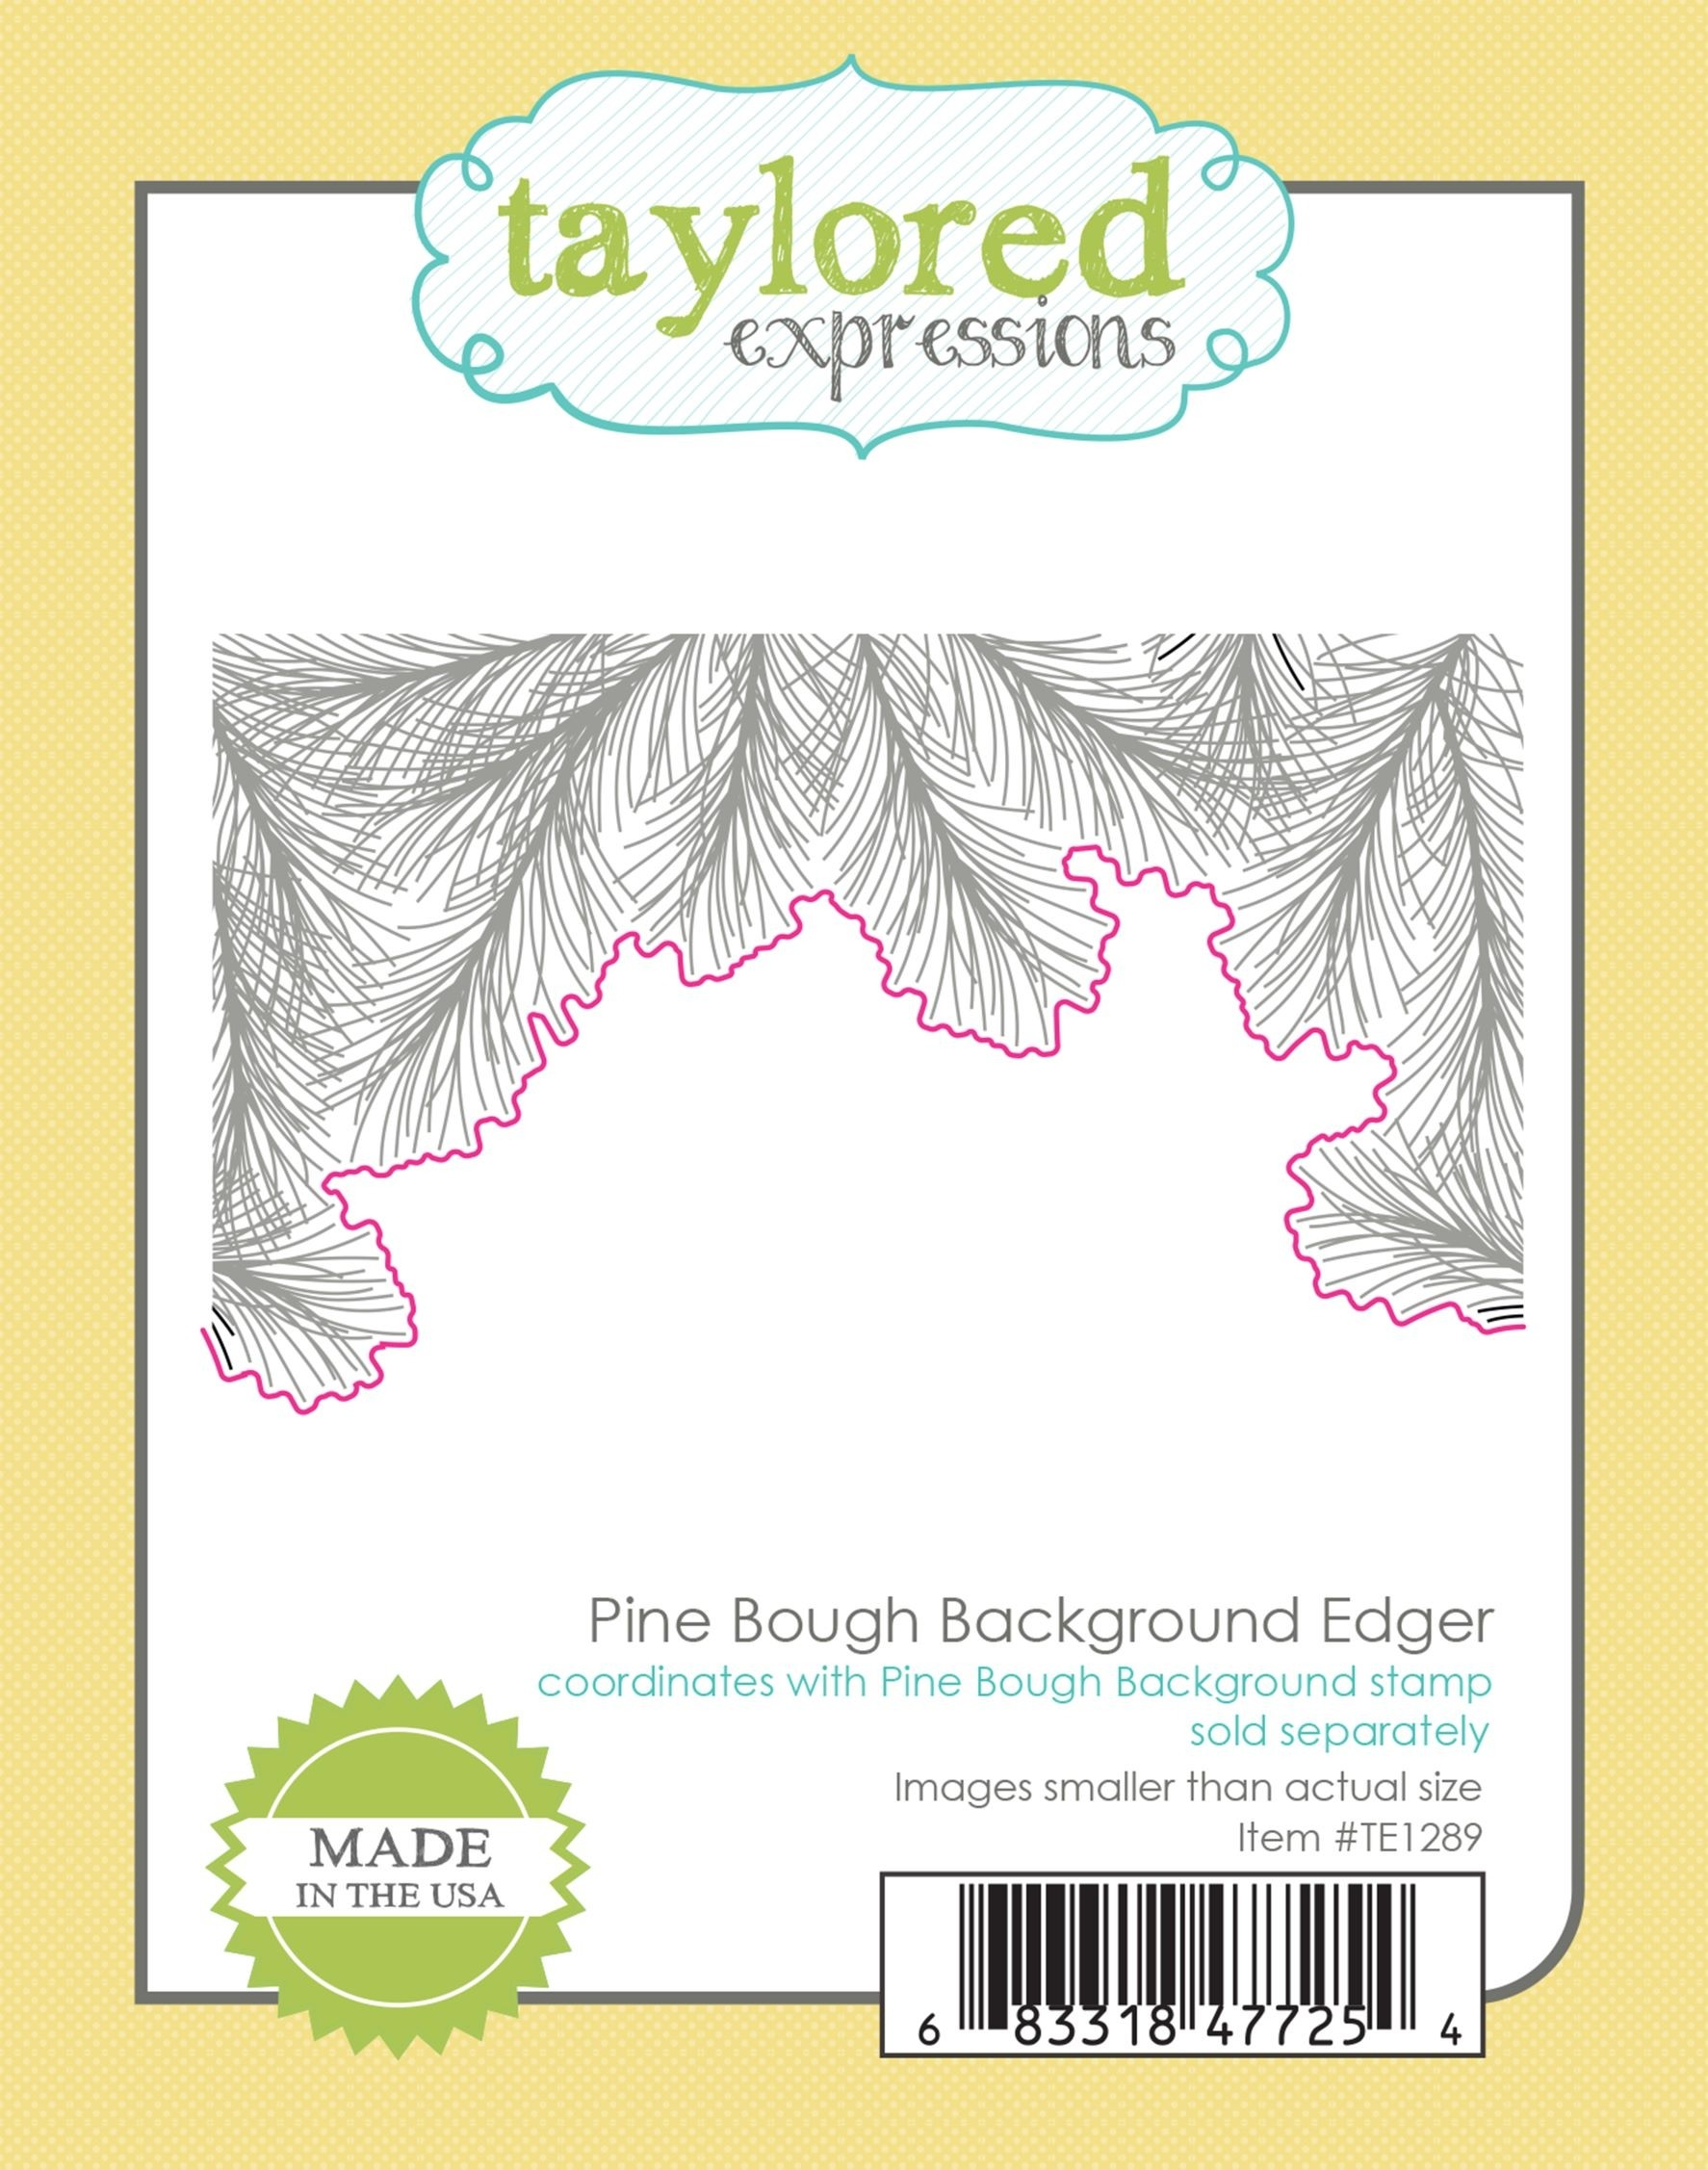 *NEW* - Taylored Expression - Pine Bough Background Edger